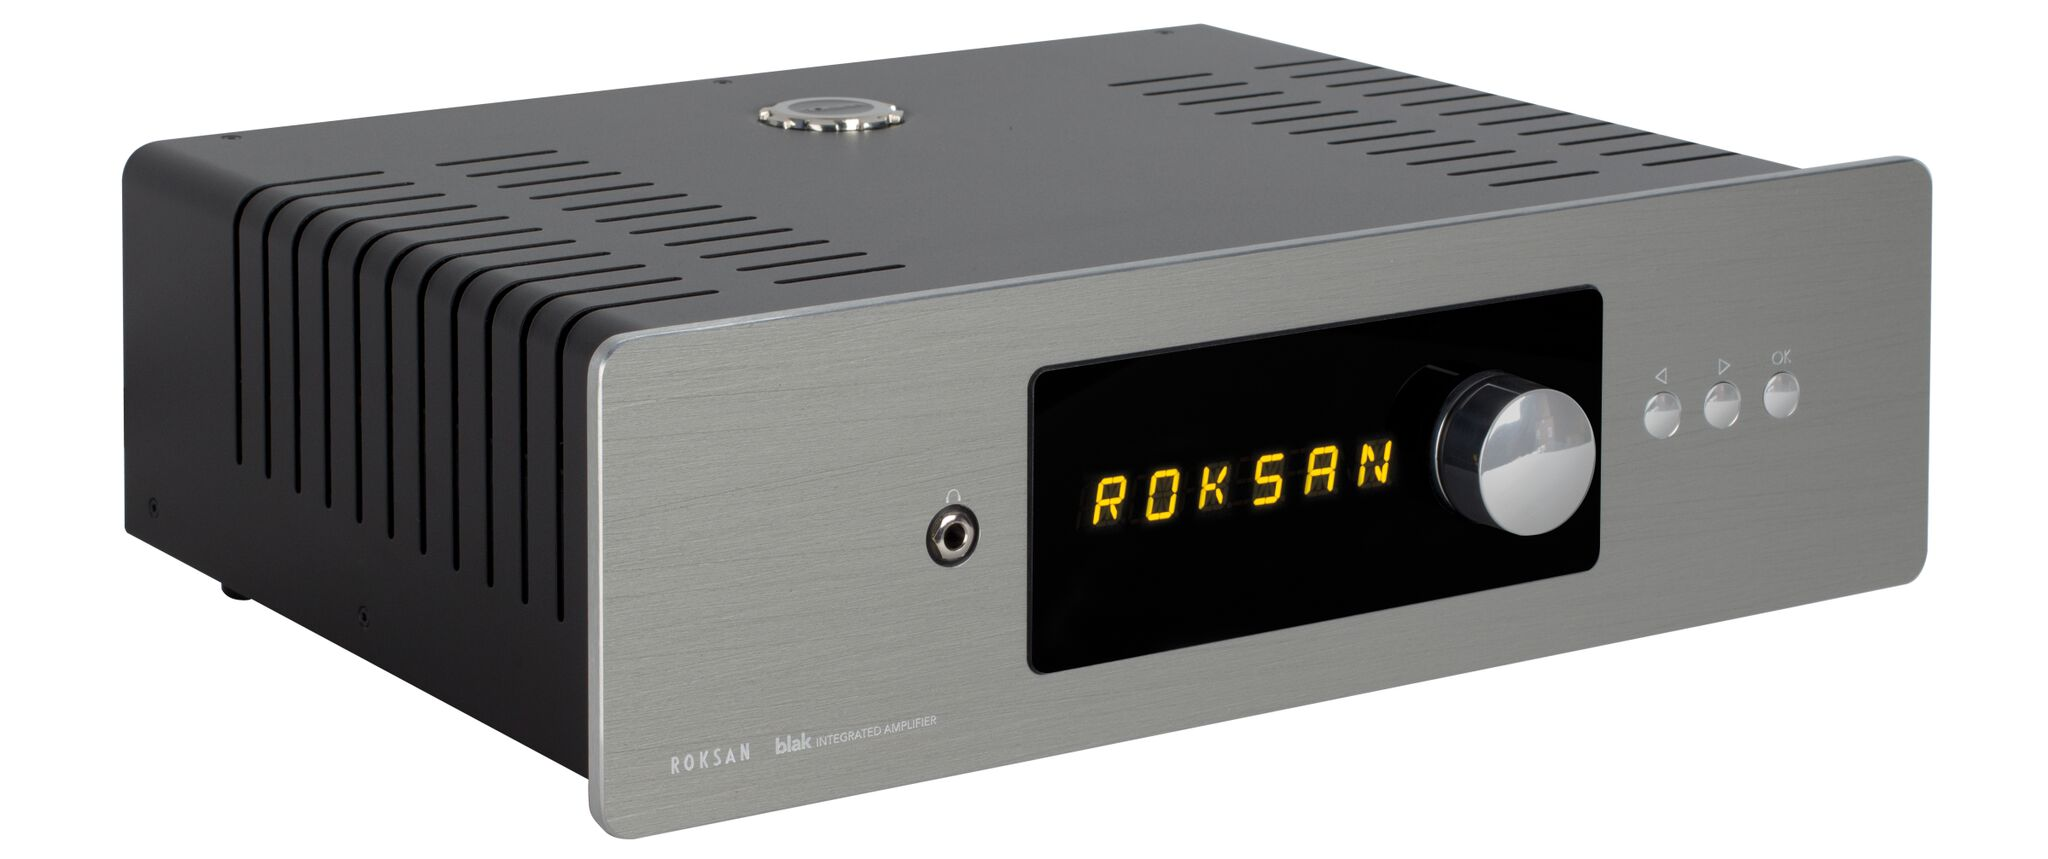 Amplificateur Roksan Black, DAC 24 bits / 192 kHz, Bluetooth apt-X,